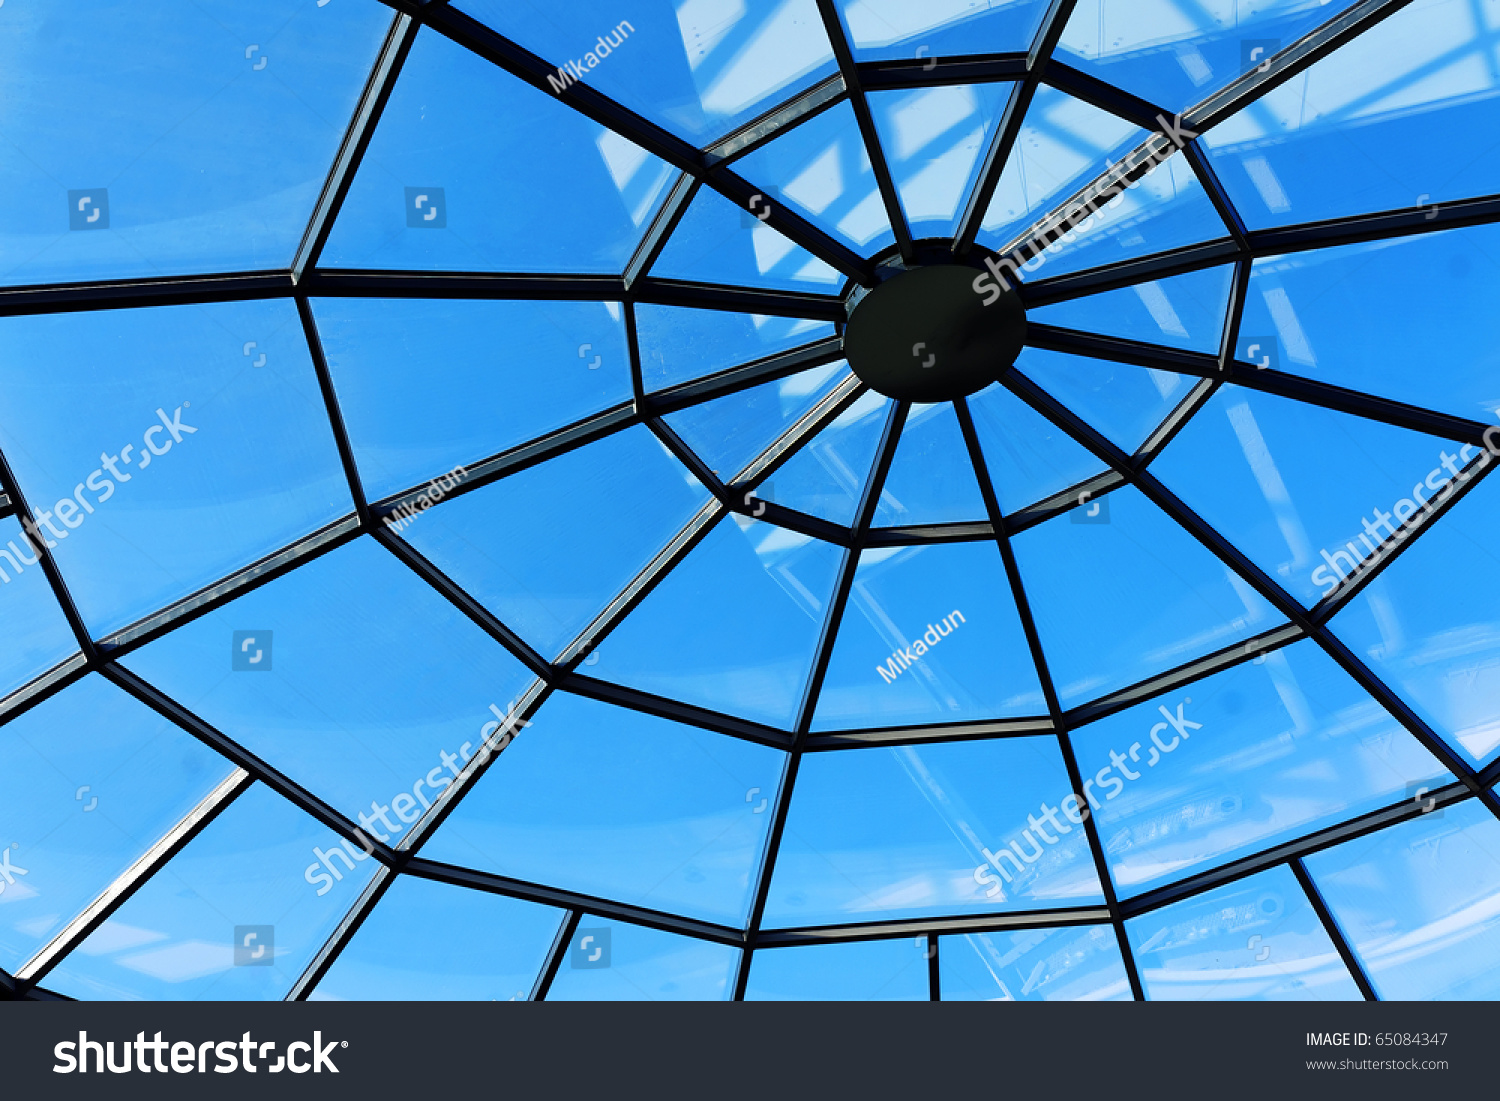 Sunroof of a shopping mall #65084347